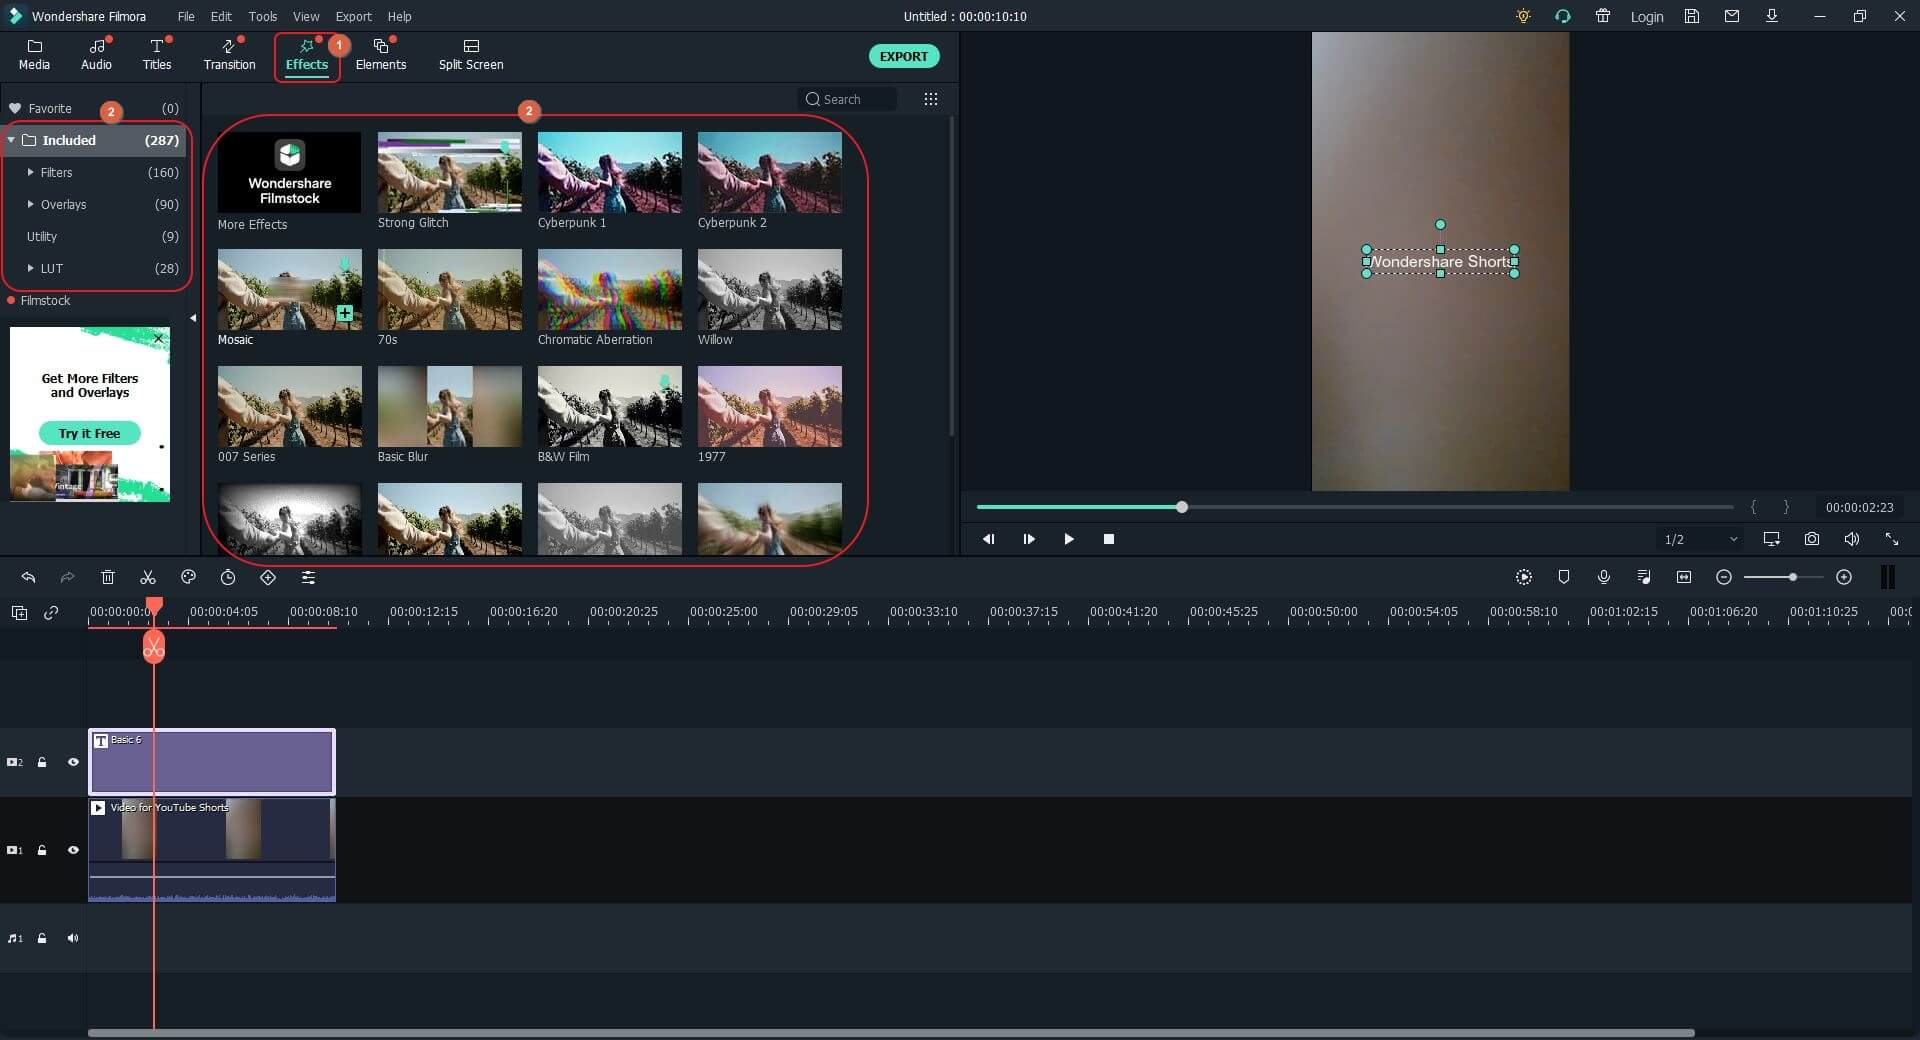 Add effects to YouTube Shorts video with Filmora